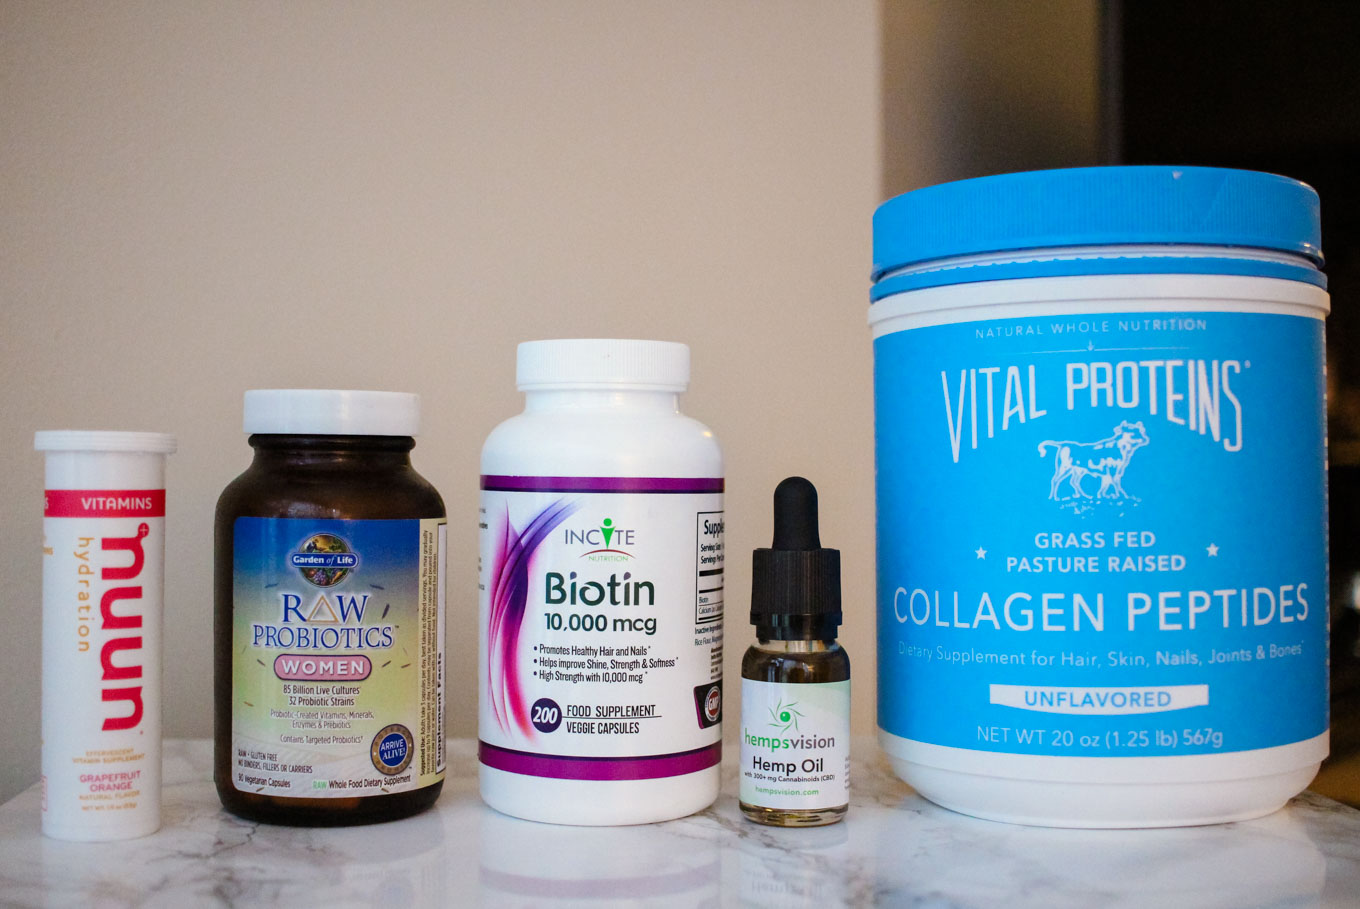 Lifestyle blogger Roxanne of Glass of Glam's favorite supplements